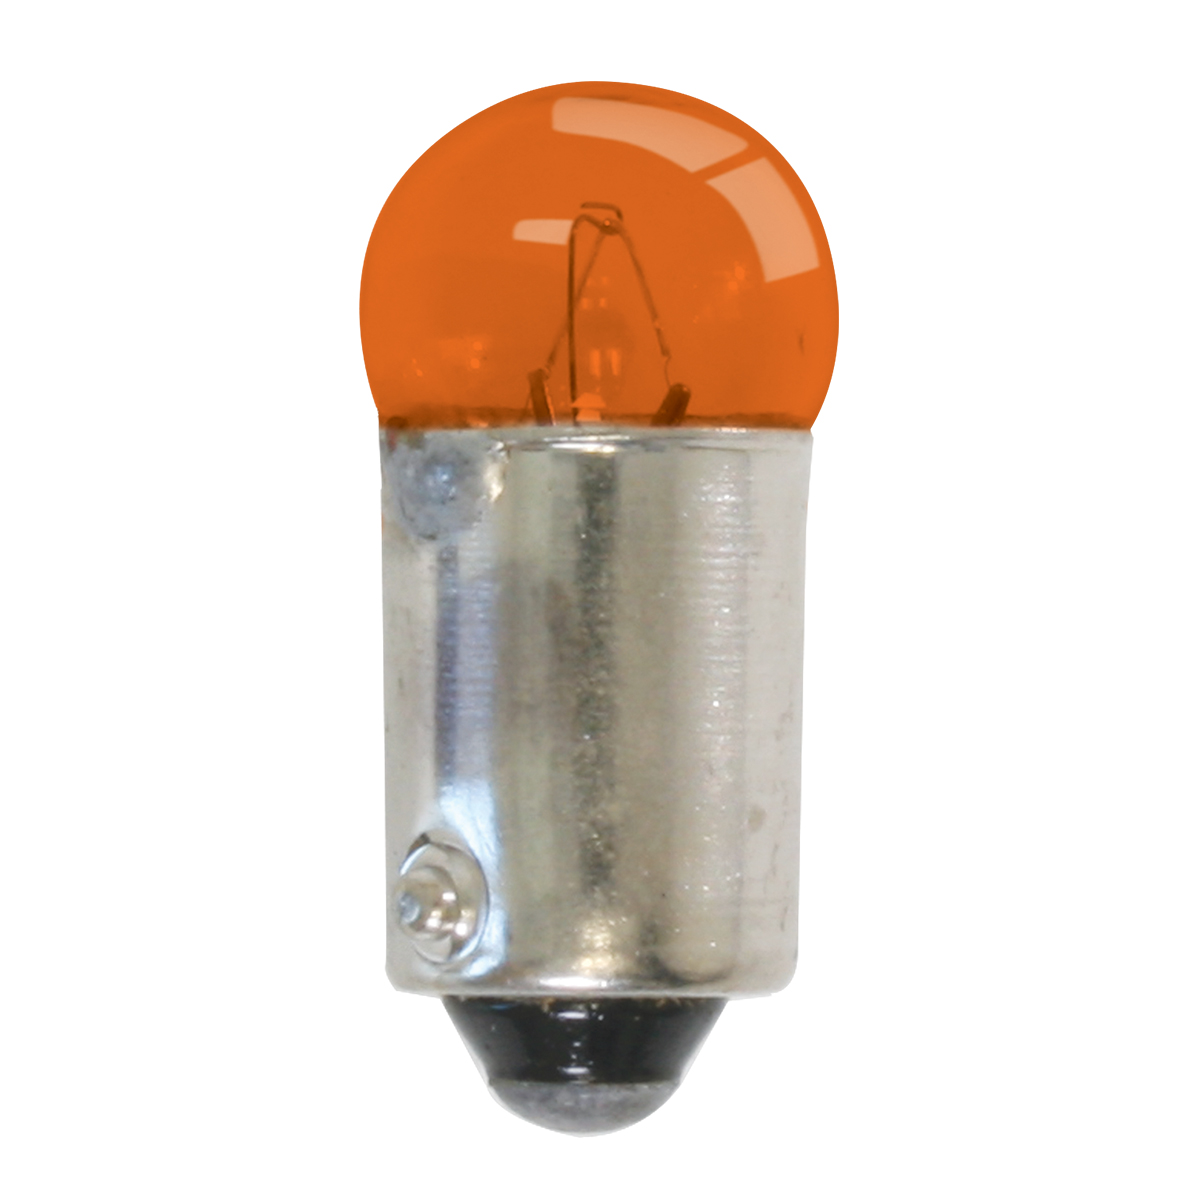 #79090 Miniature Replacement #53 Amber Light Bulb